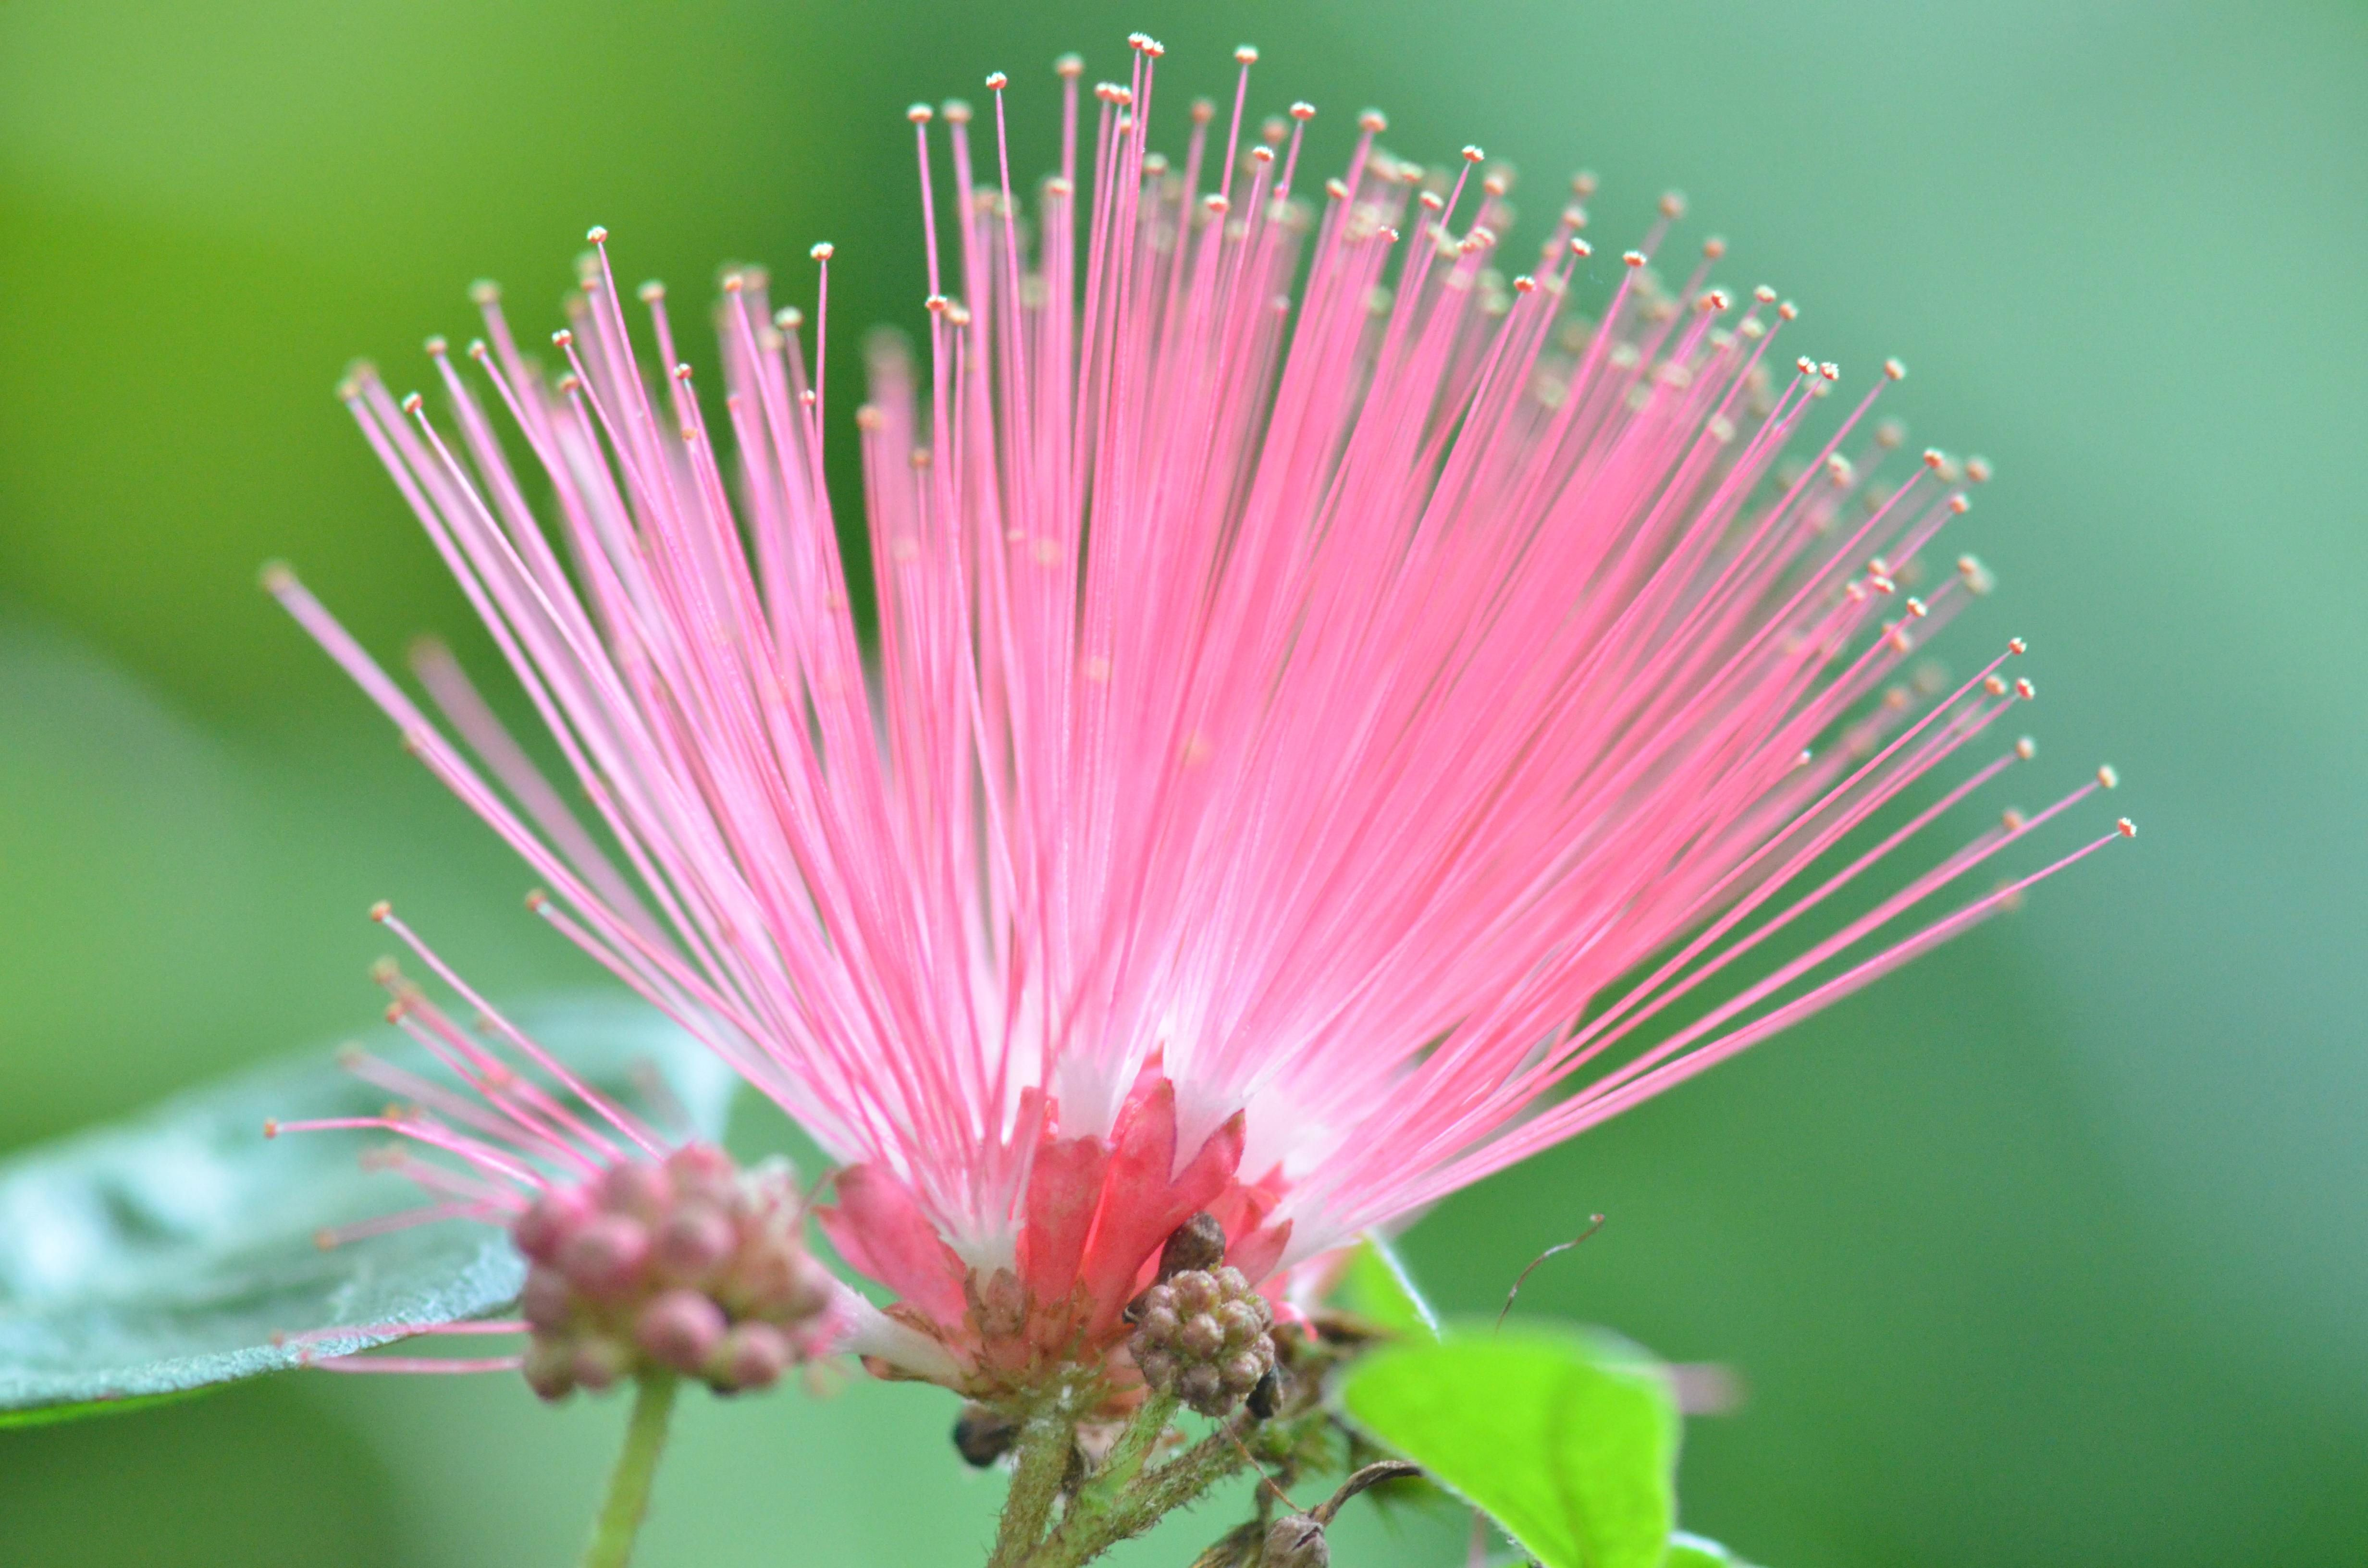 Powder Puff Trees, How to Grow and Care for Calliandra Powder Puff Powder puff tree pictures